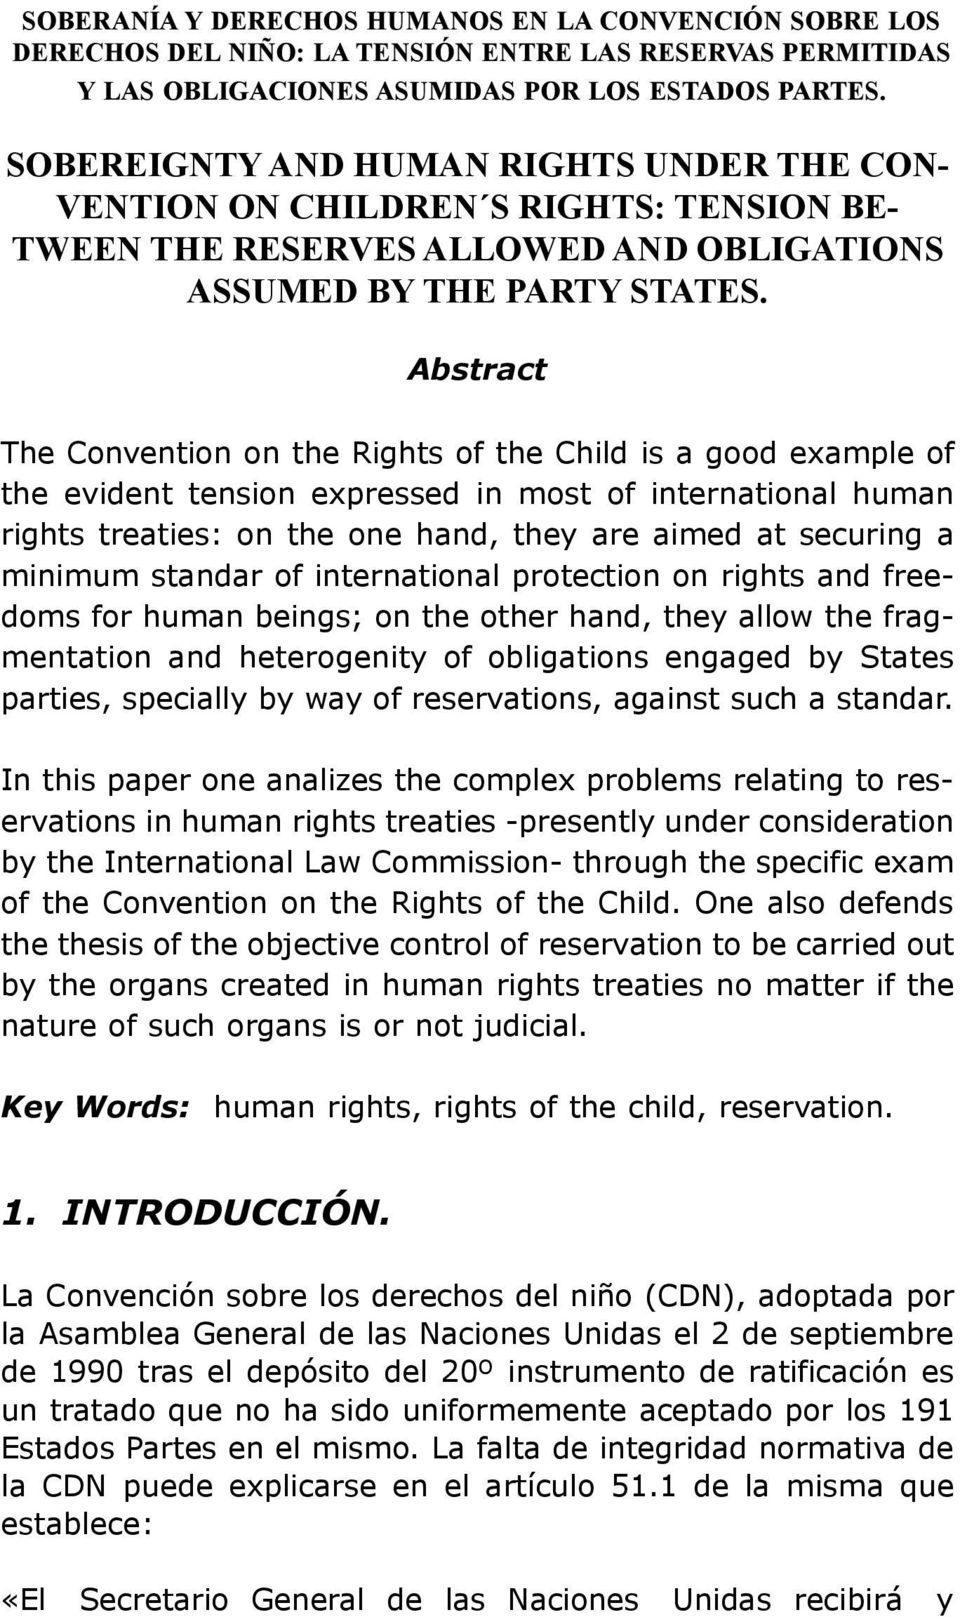 Abstract The Convention on the Rights of the Child is a good example of the evident tension expressed in most of international human rights treaties: on the one hand, they are aimed at securing a